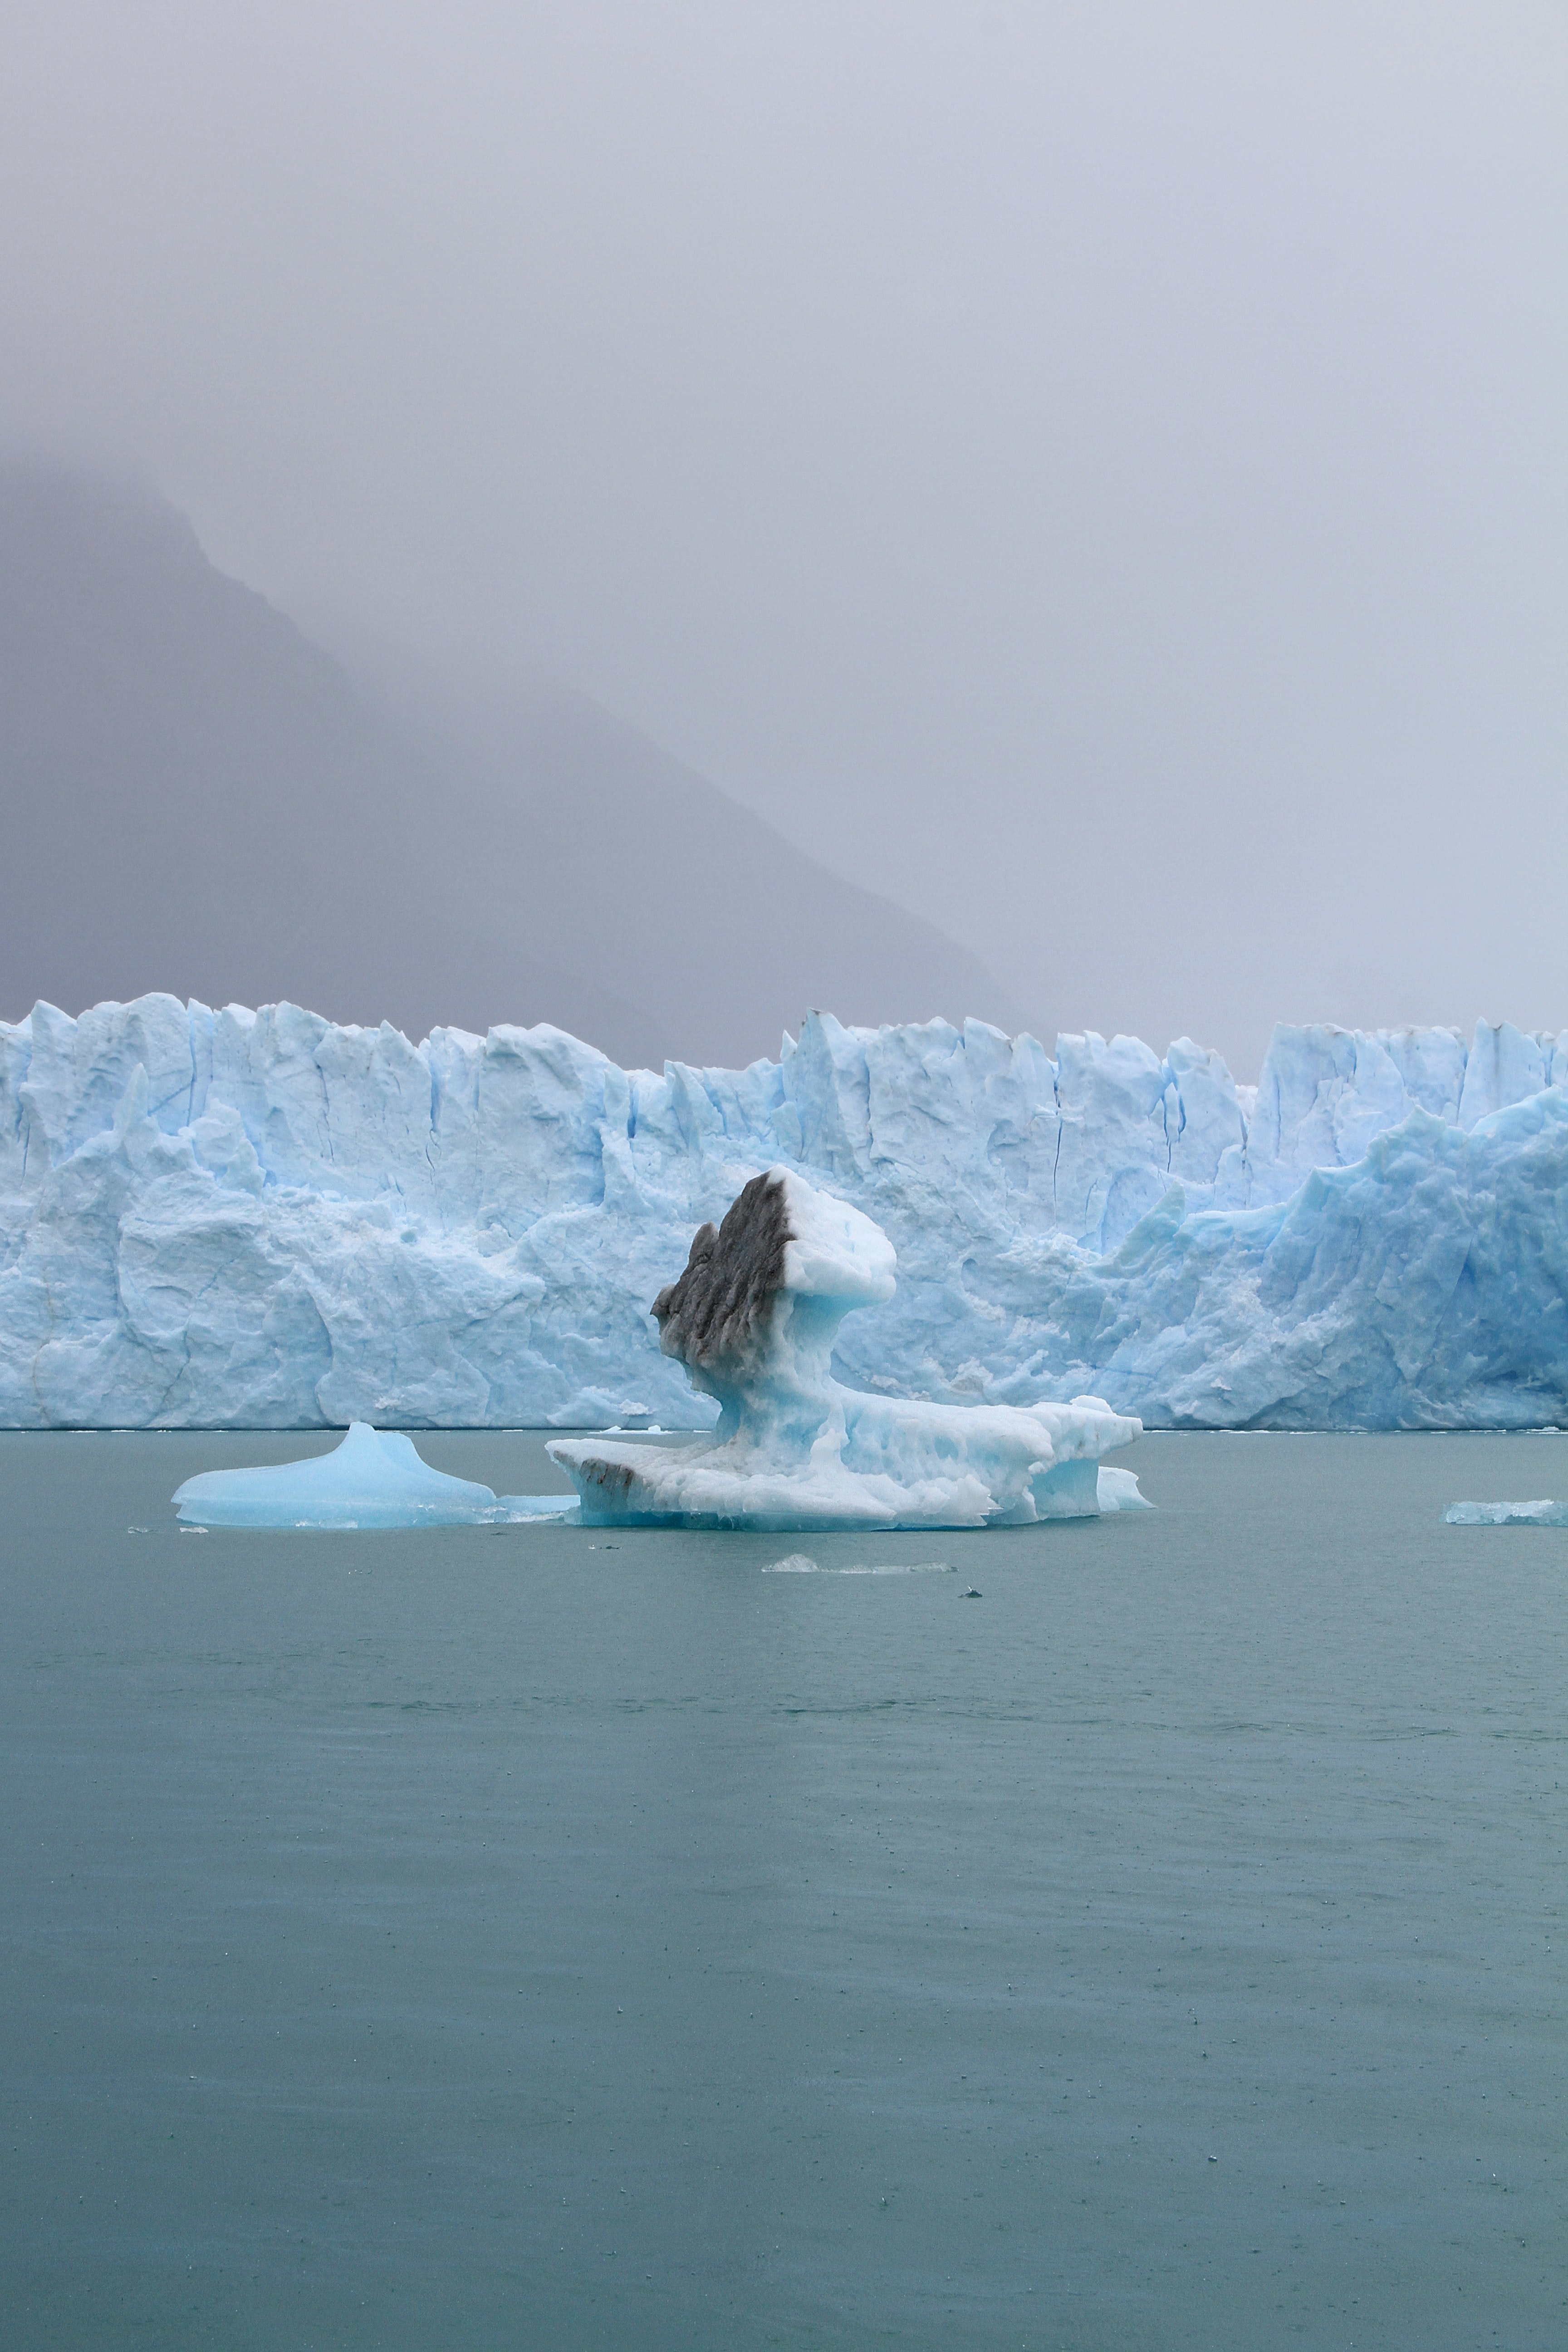 iceberg on body of water at daytime